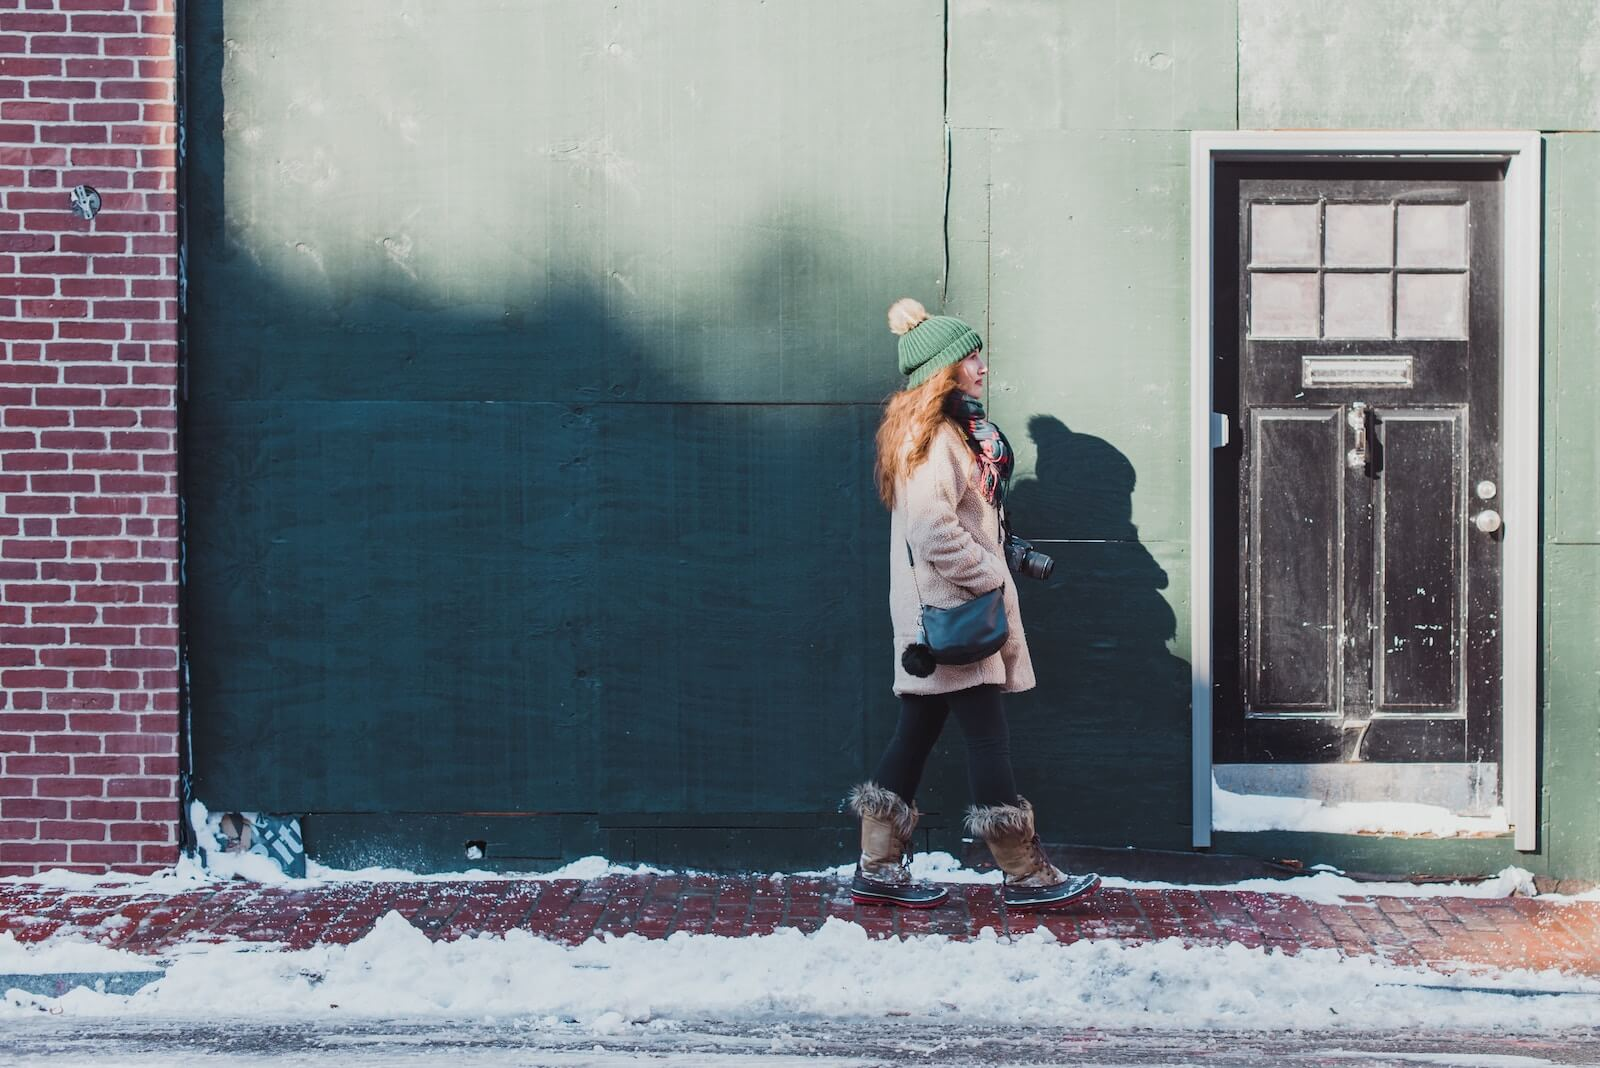 Winter workplace safety tips for small businesses